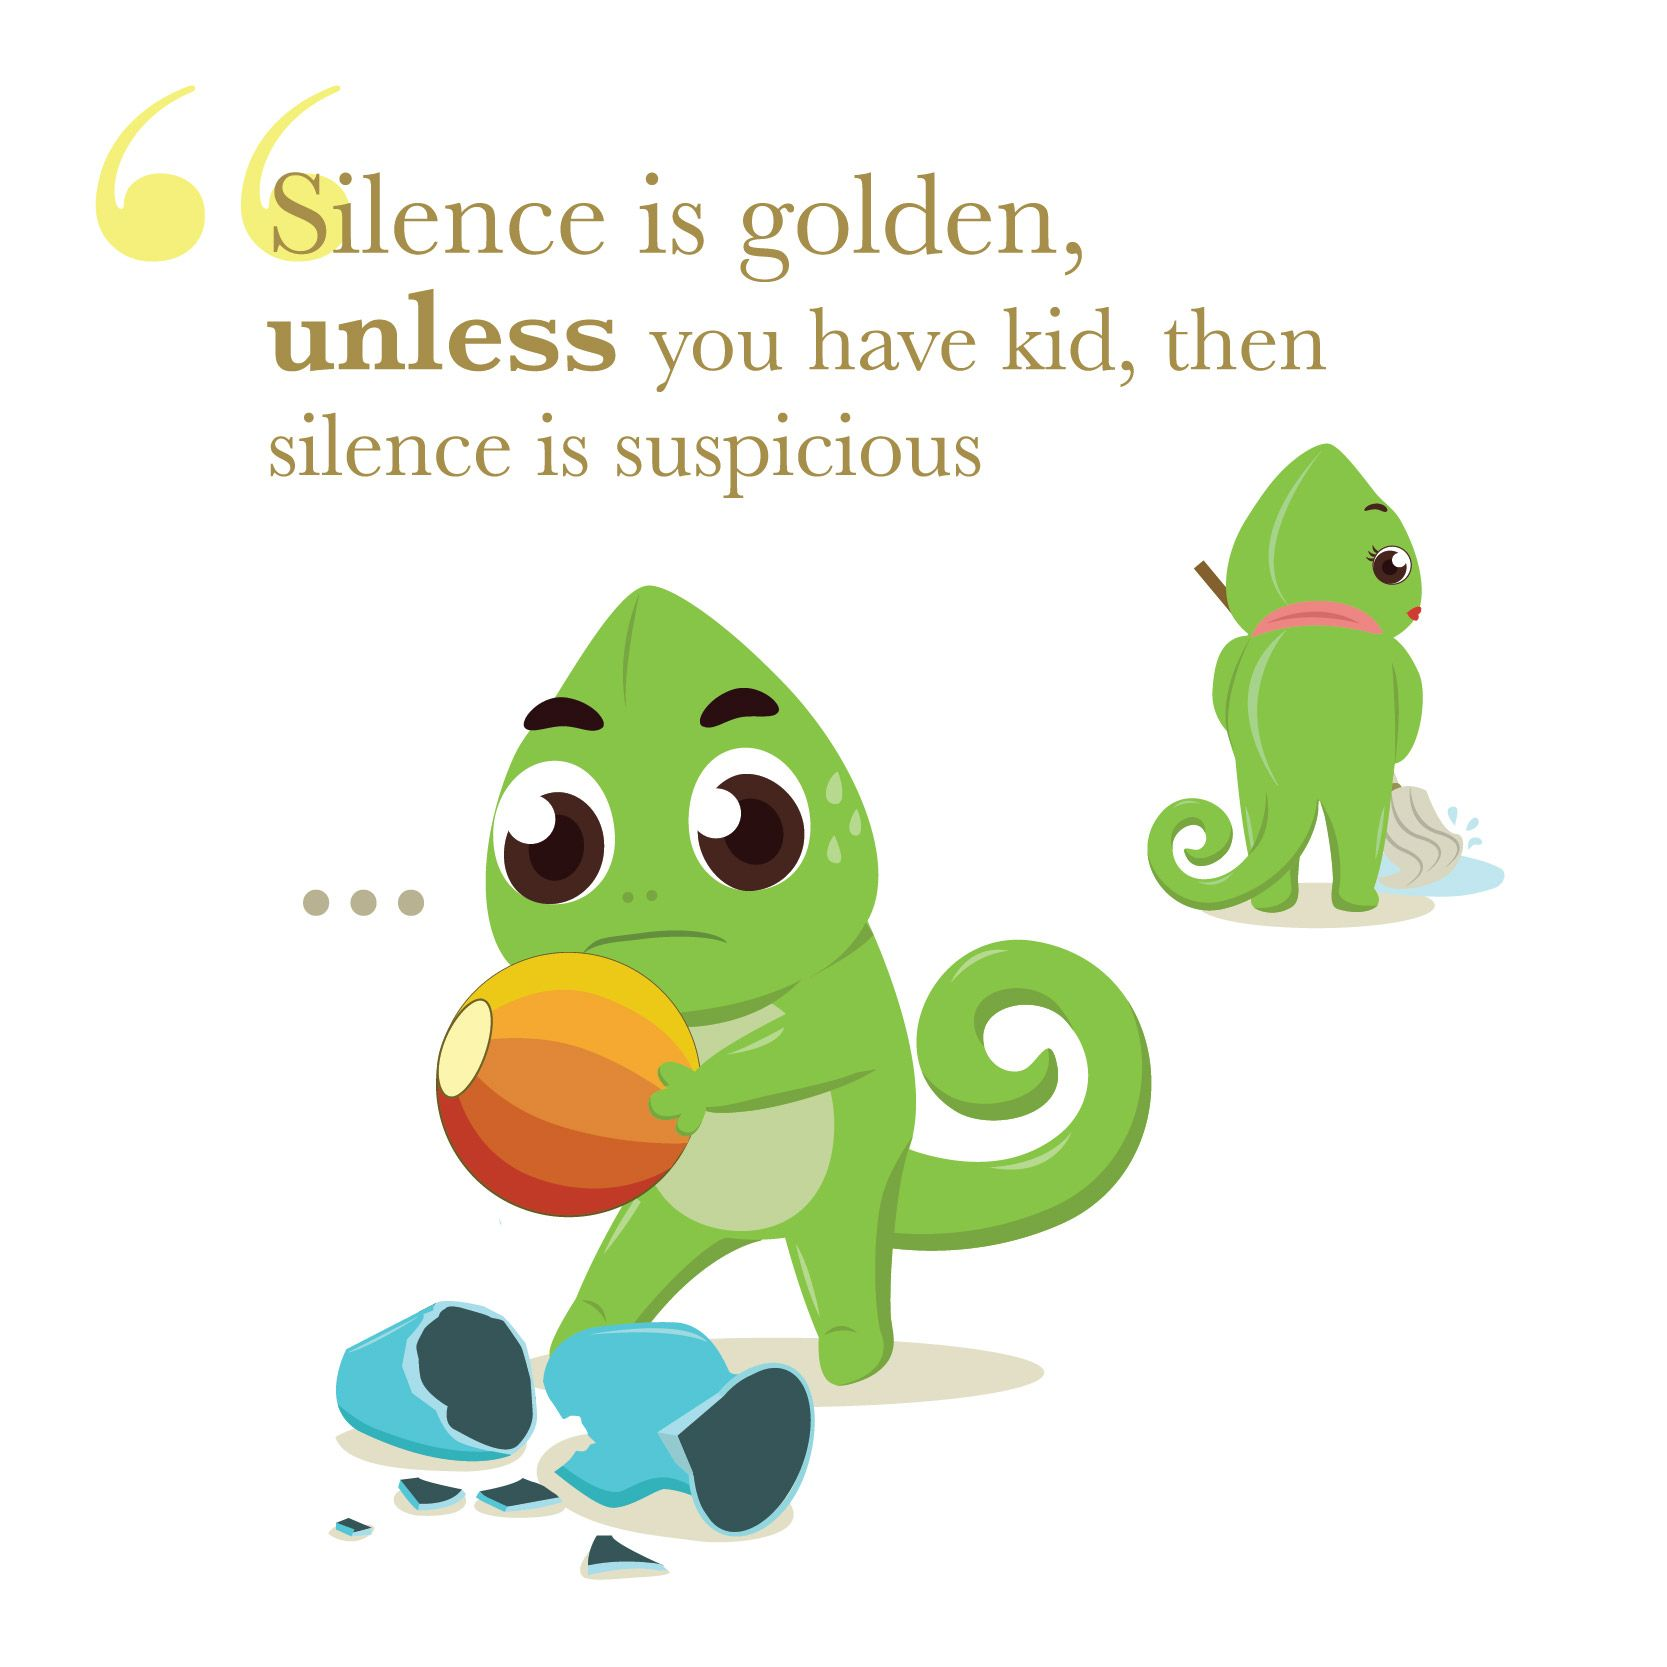 """Silent is golden unless you have kid then silence i suspicious"" Masa"